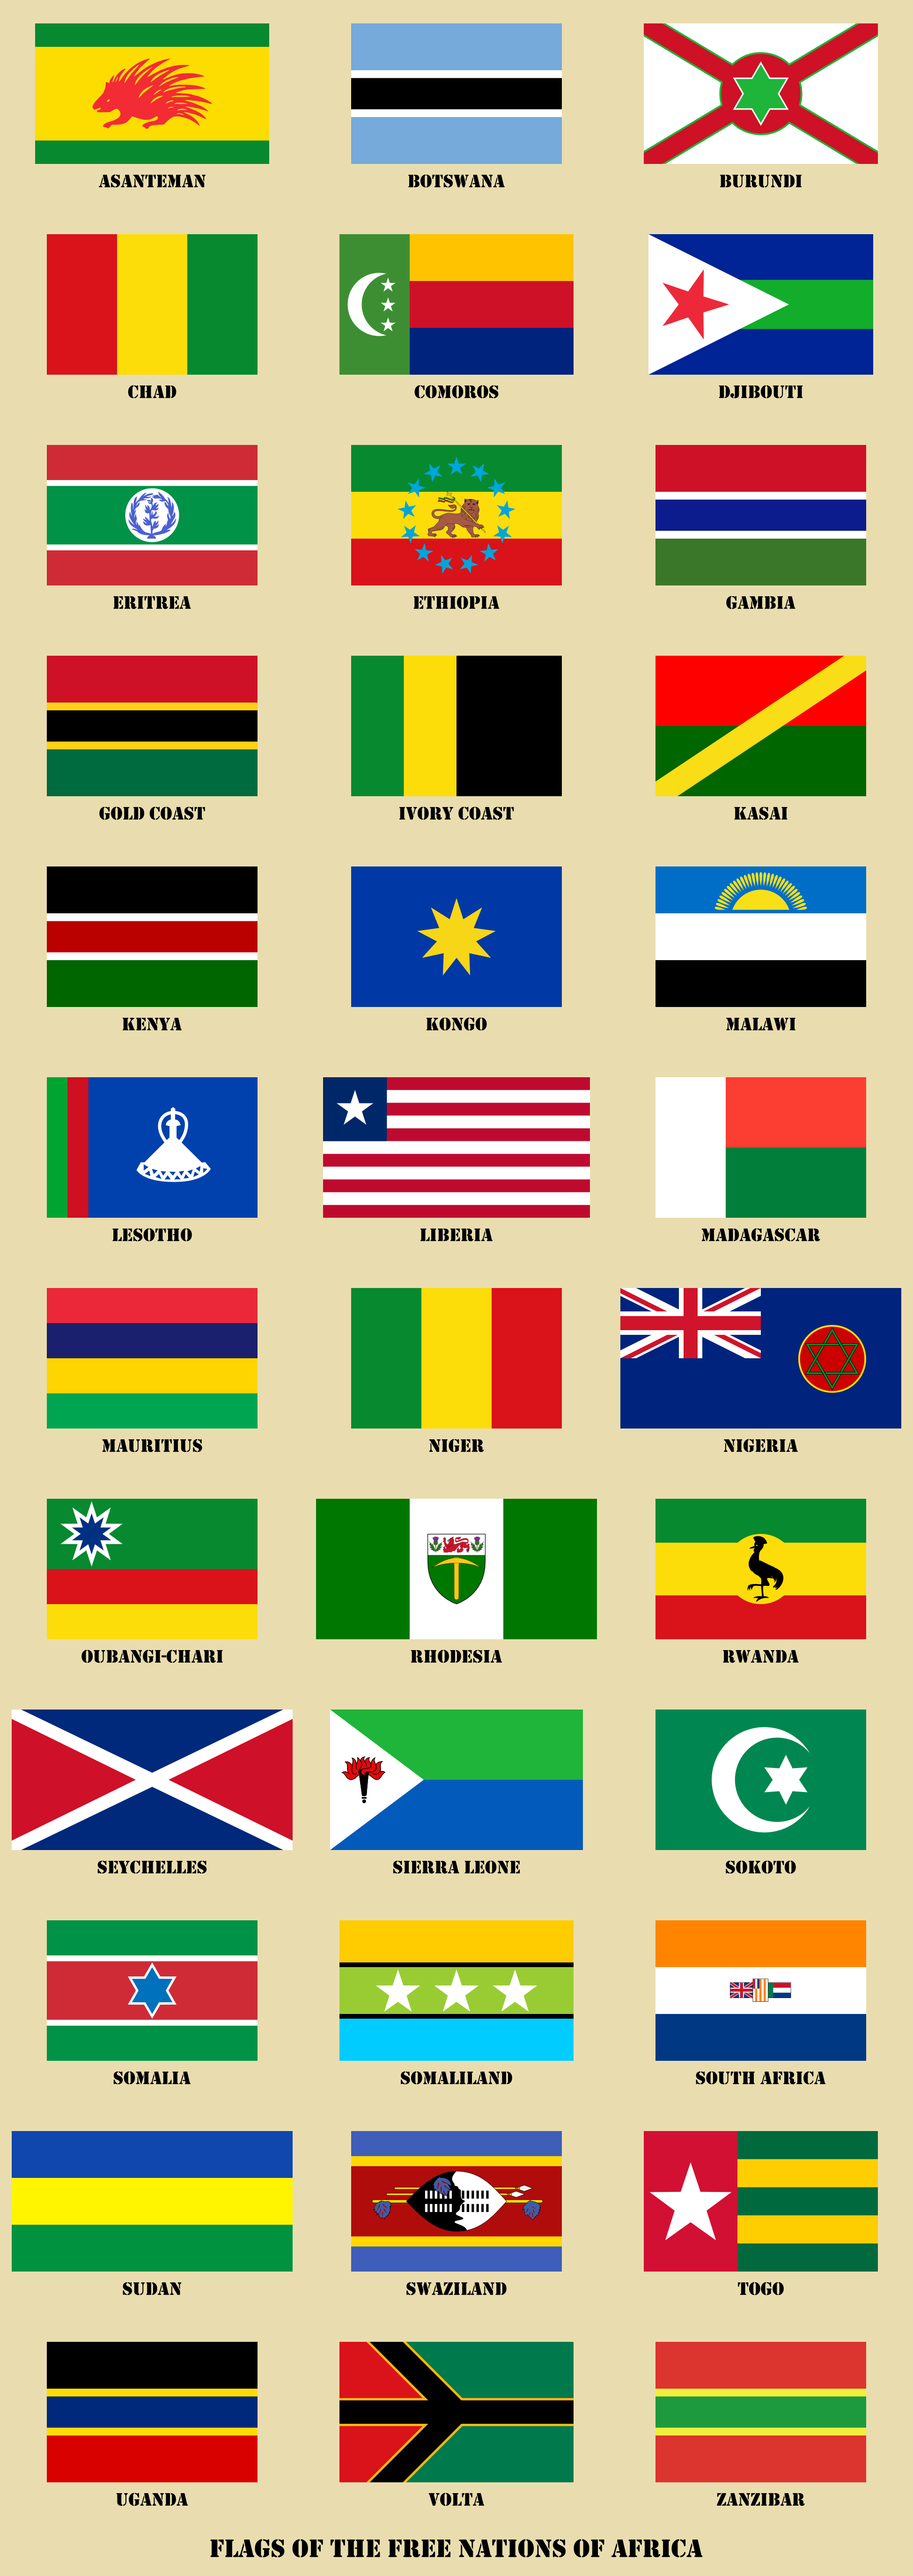 Flag Panel - Non-Communist Africa.png